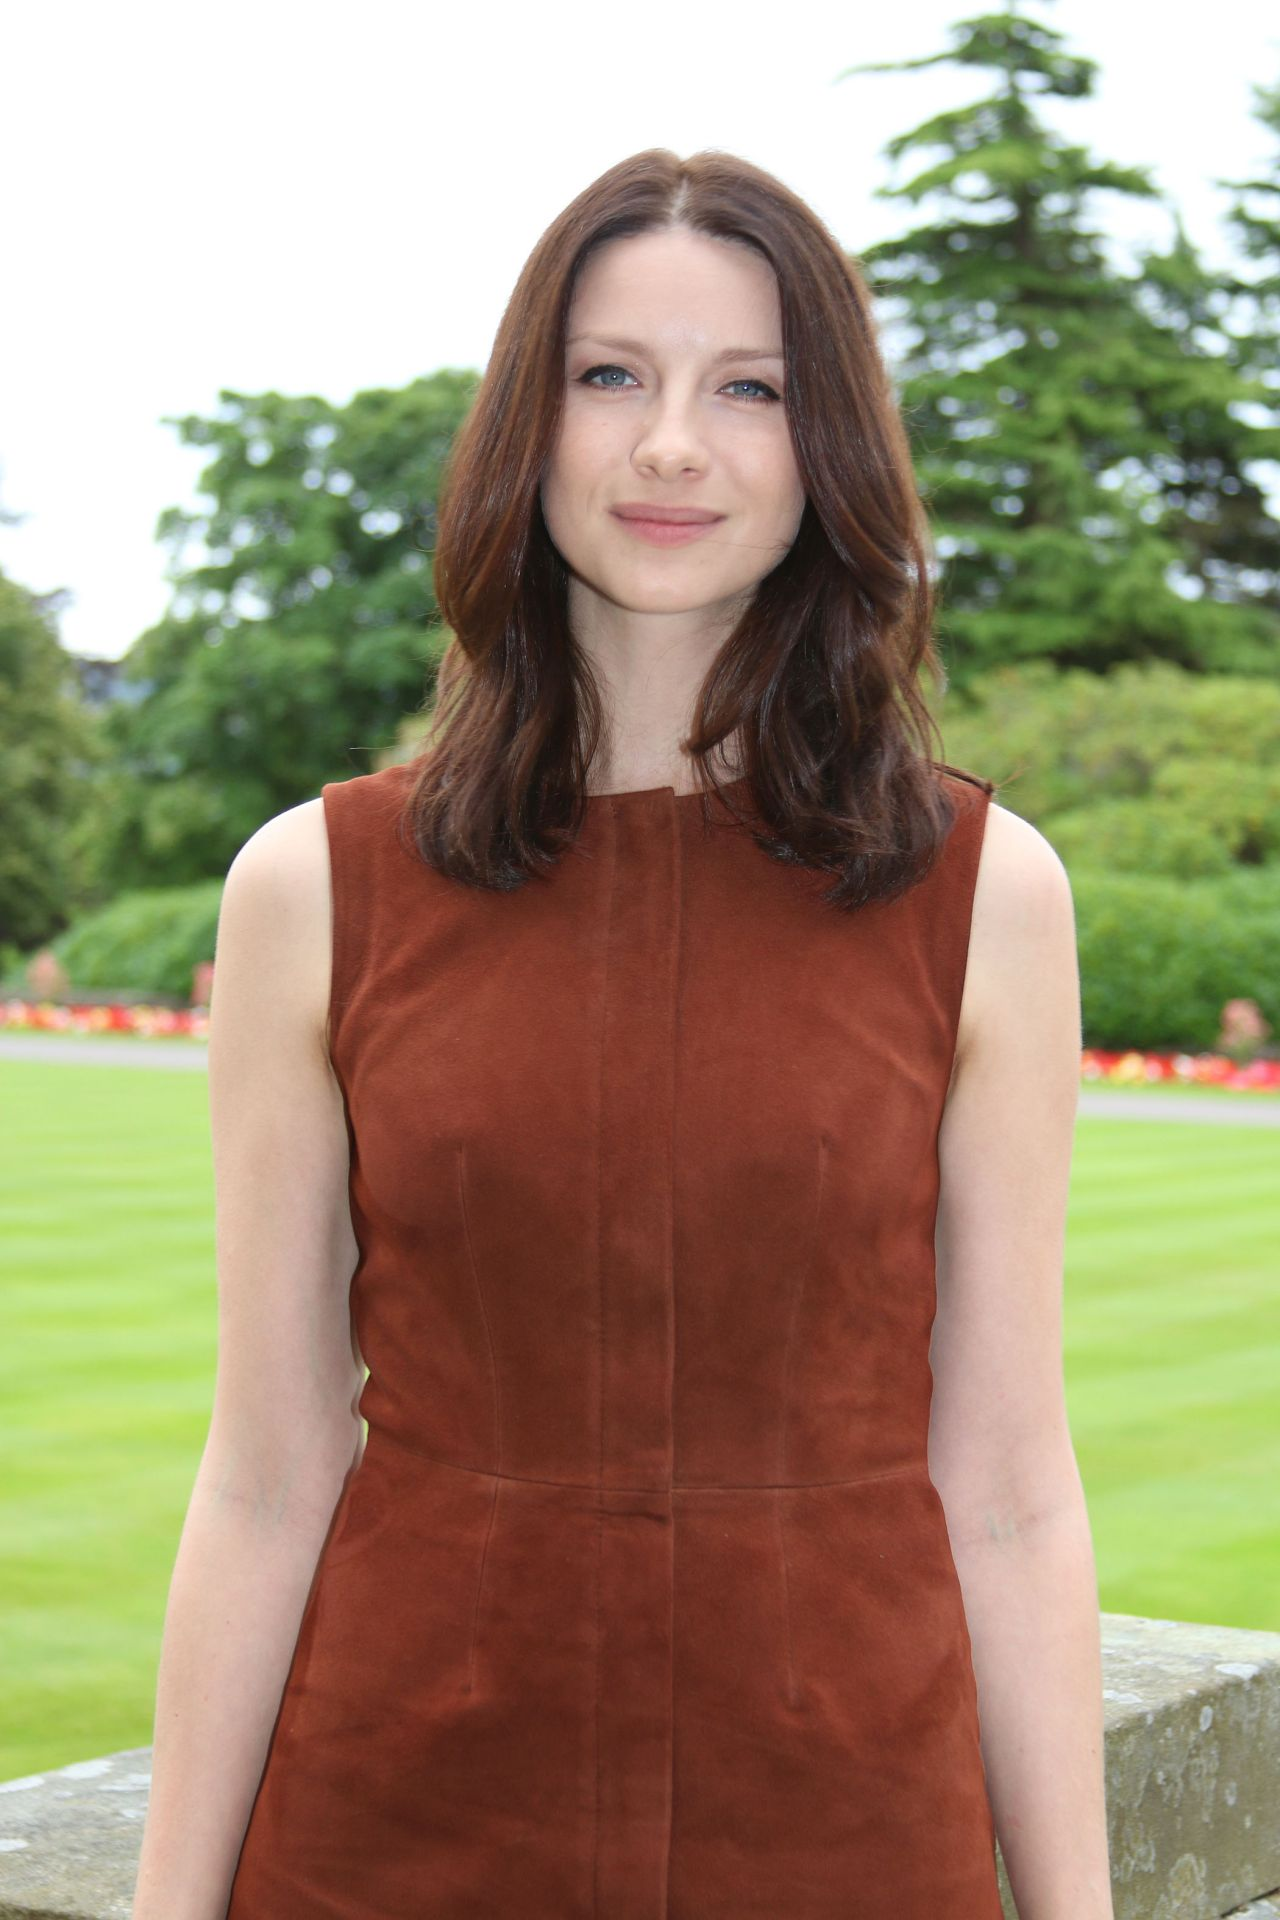 Caitriona balfe in outlander 2 8